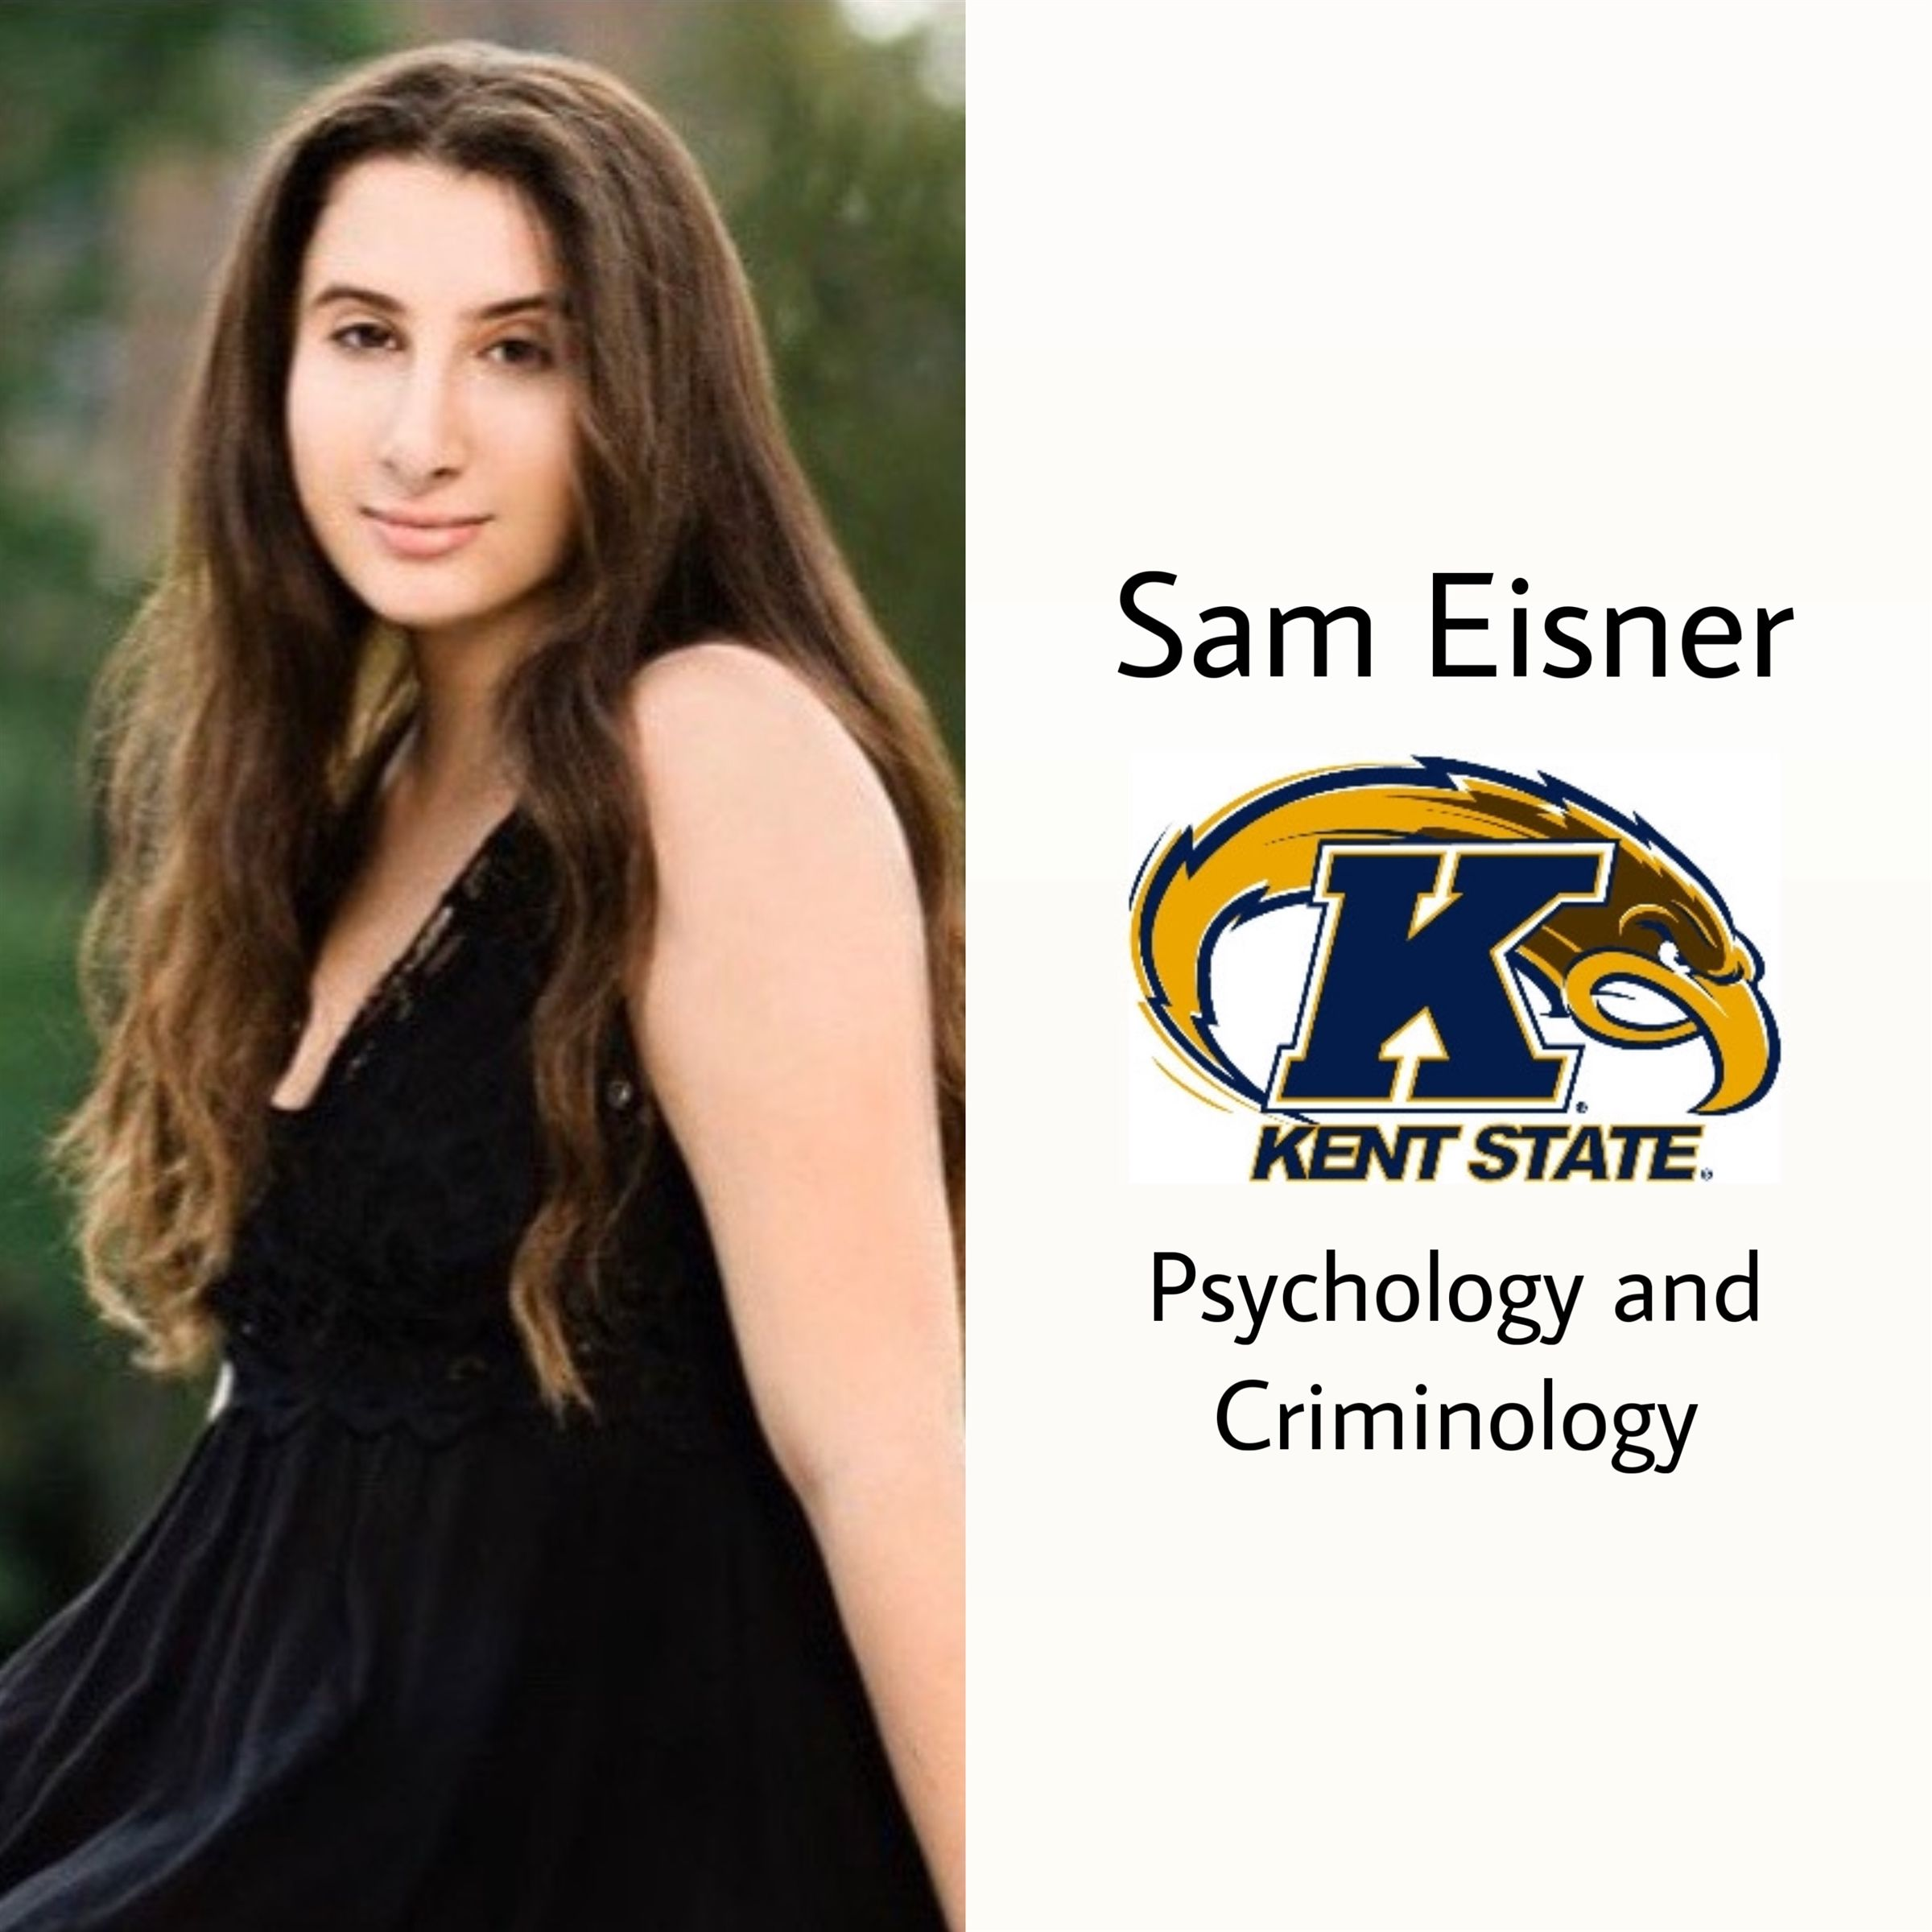 Another golden flash! Congrats Sam!! She will be attending Kent State this fall studying psychology and criminology.